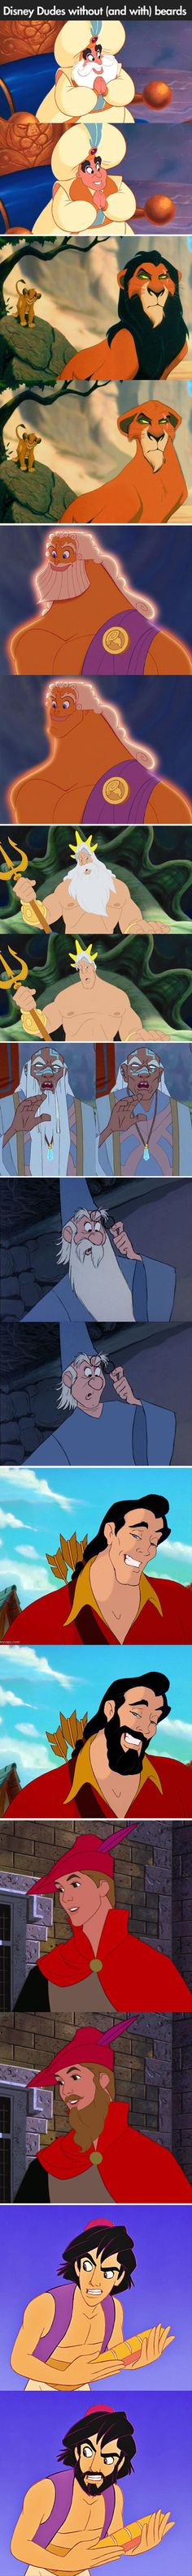 disney men with beards